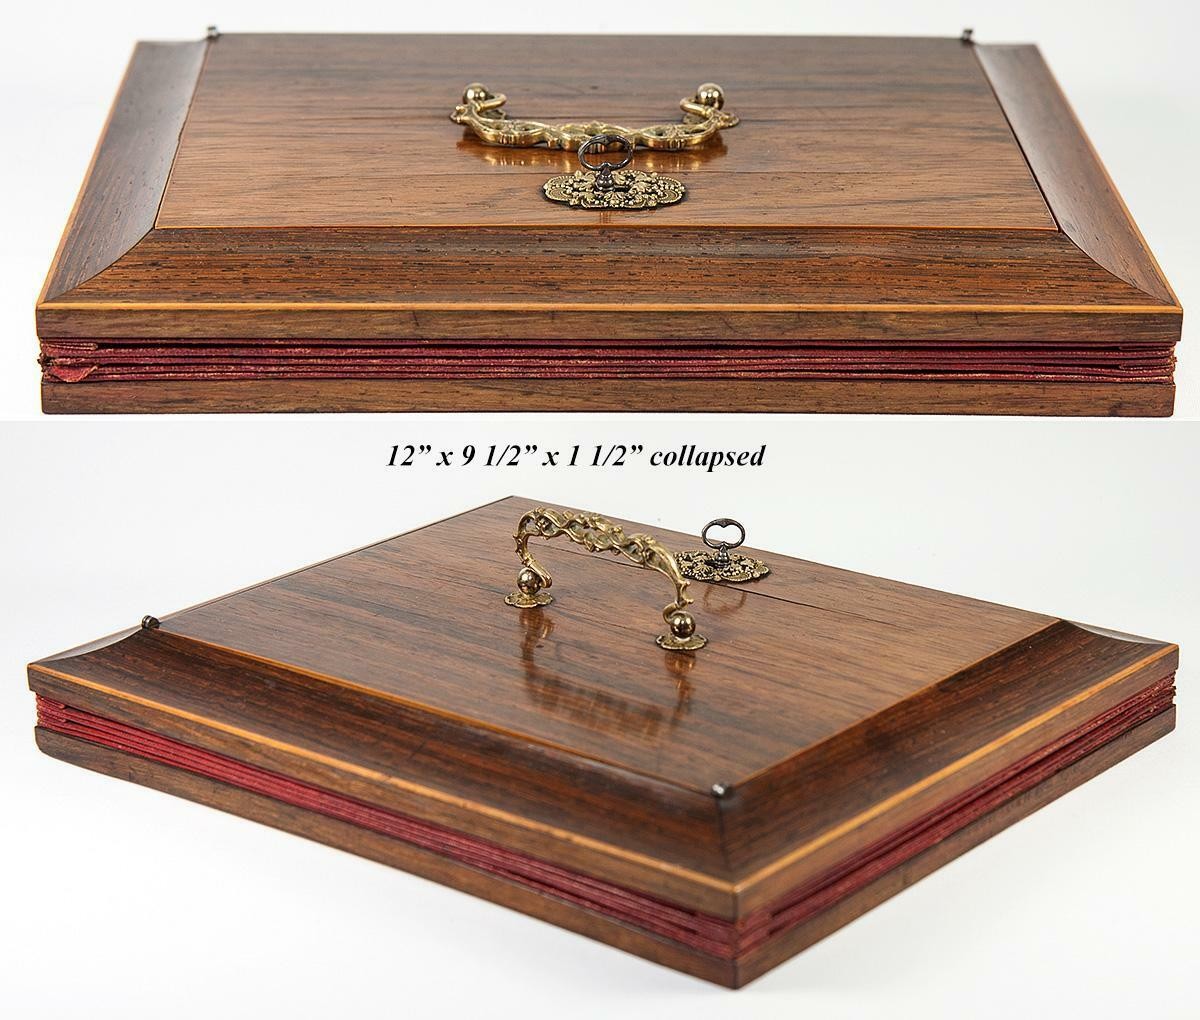 RARE Antique French Stationery Box, Accountant or Attorney's Briefs Chest, 1830s